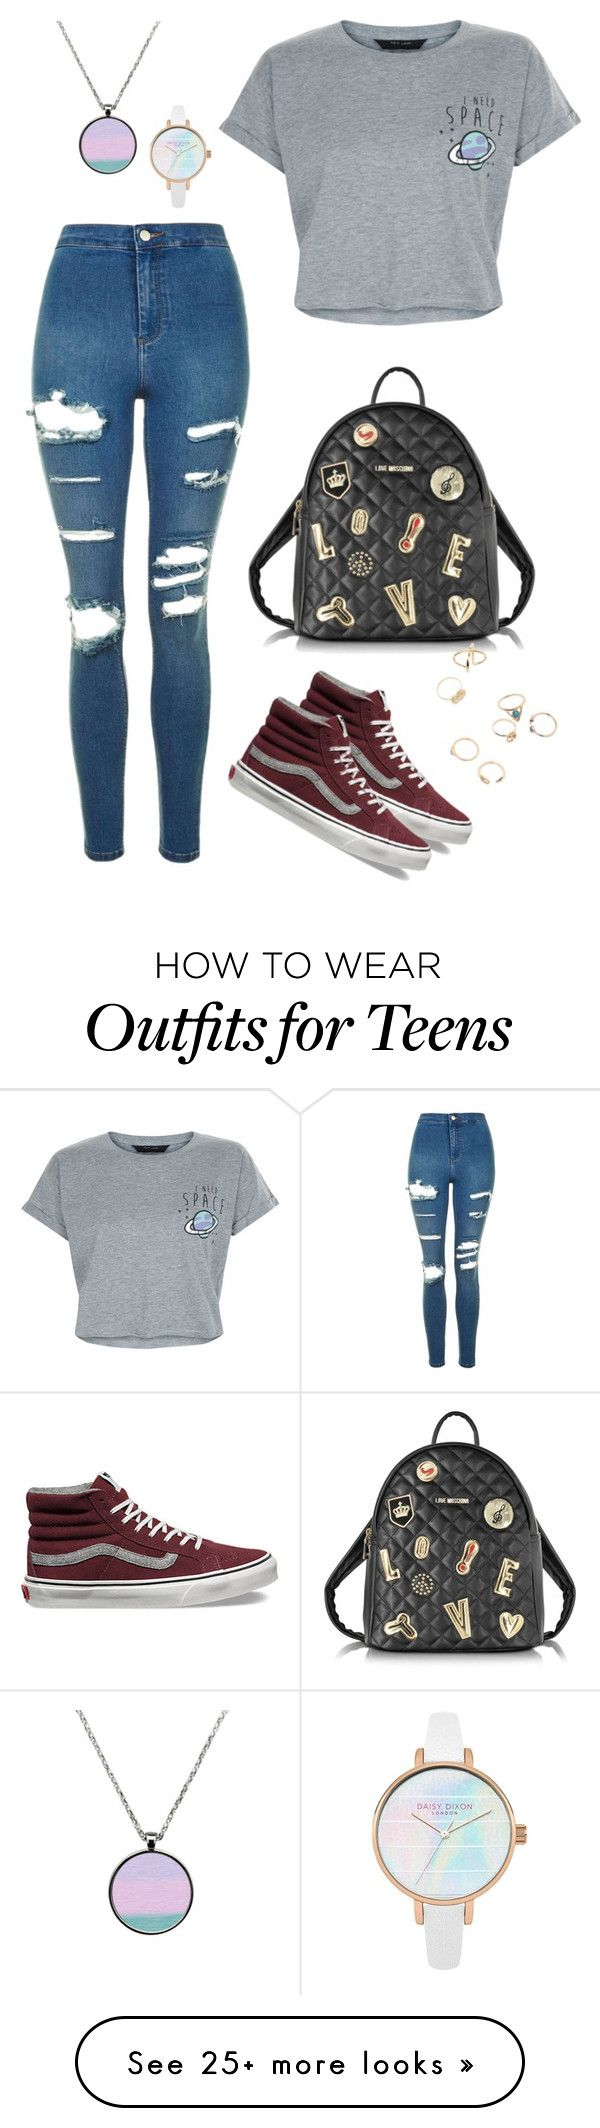 """Space"" by mshlychenko on Polyvore featuring Topshop, New Look, Vans and Love Moschino"